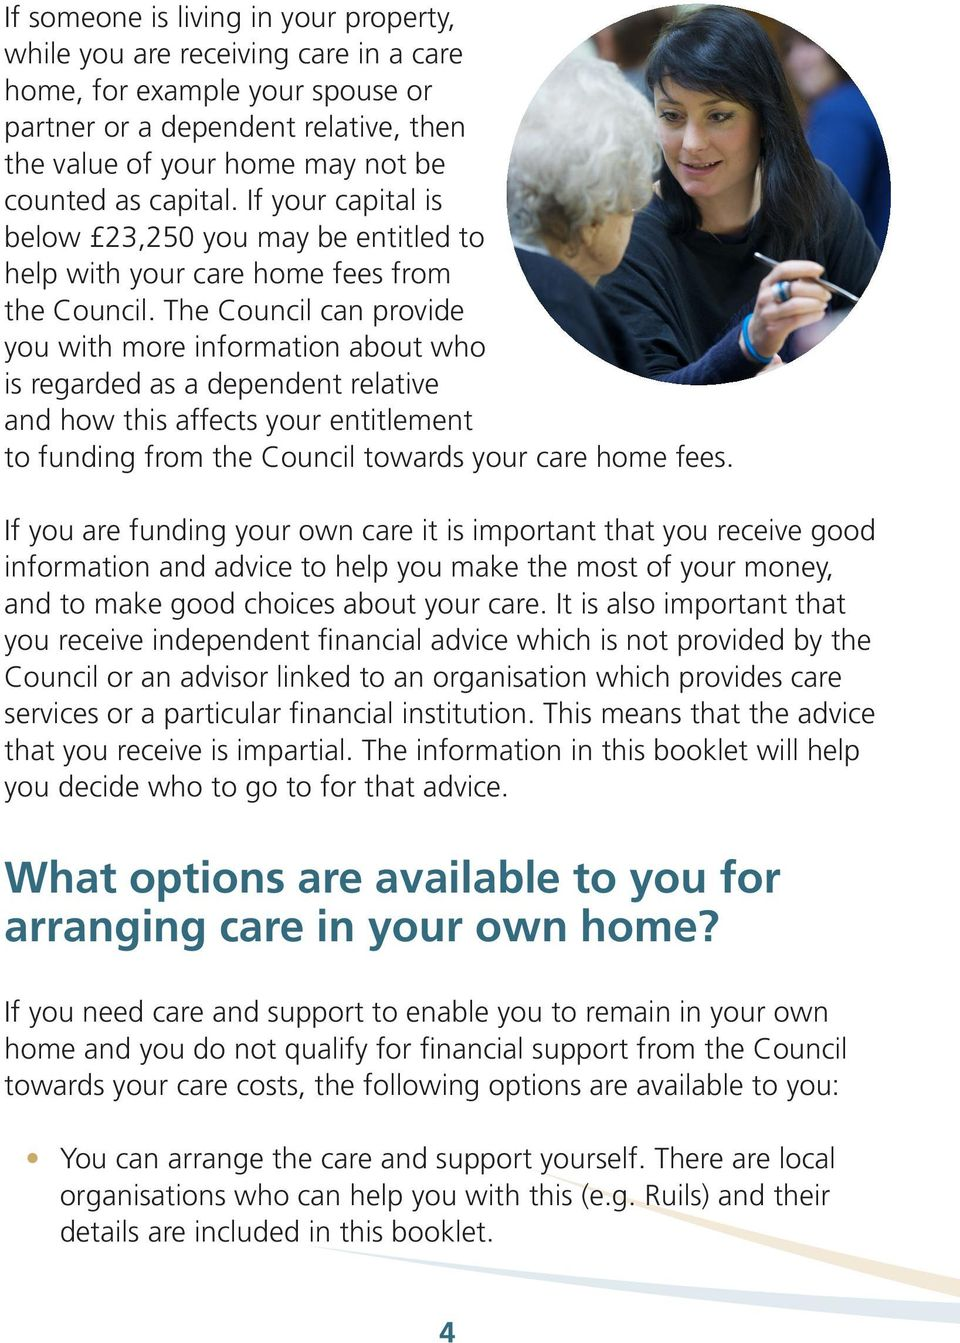 The Council can provide you with more information about who is regarded as a dependent relative and how this affects your entitlement to funding from the Council towards your care home fees.